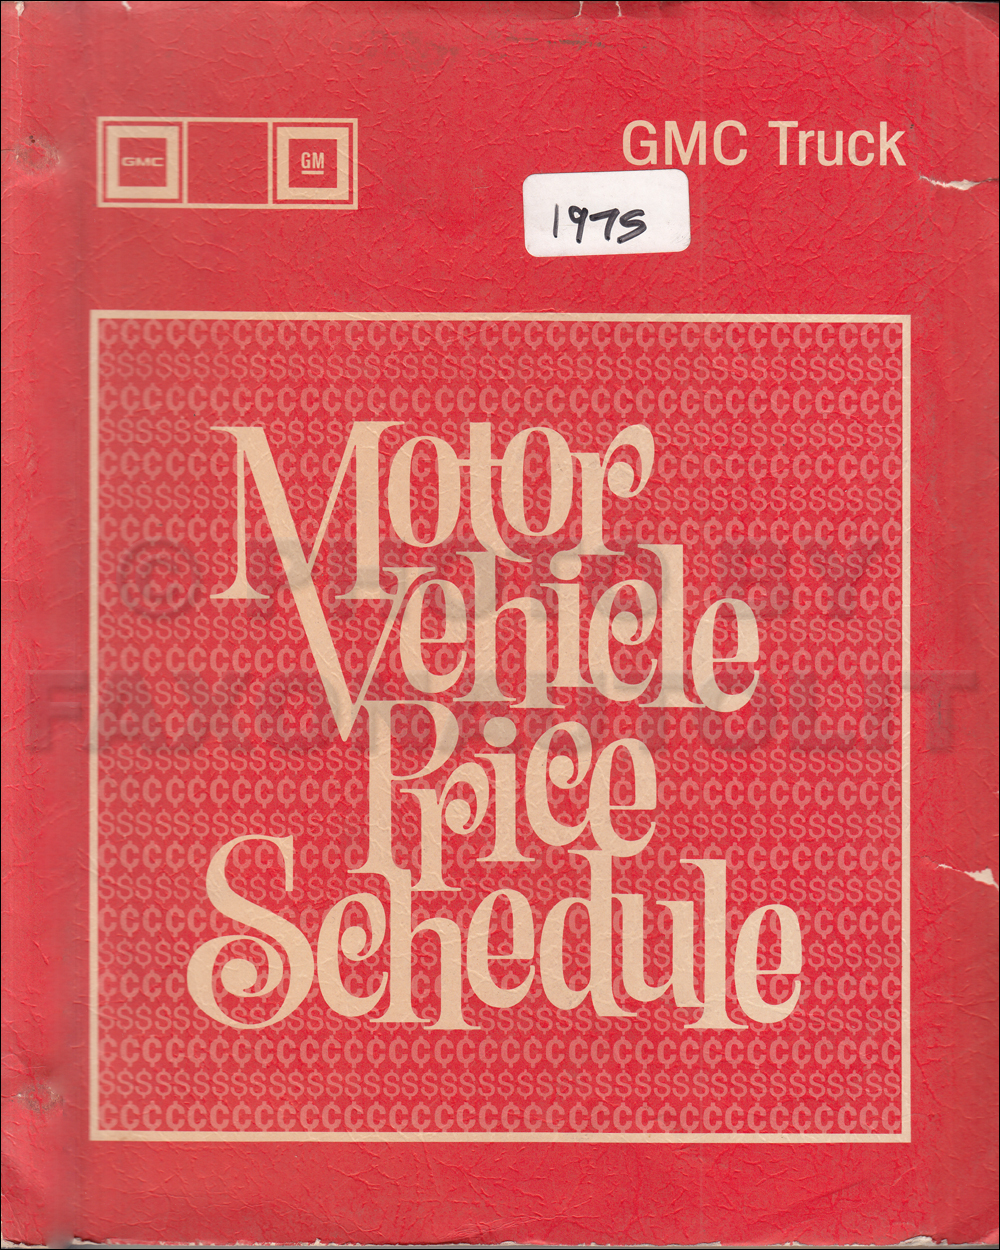 1975 GMC Truck Price Schedule Original